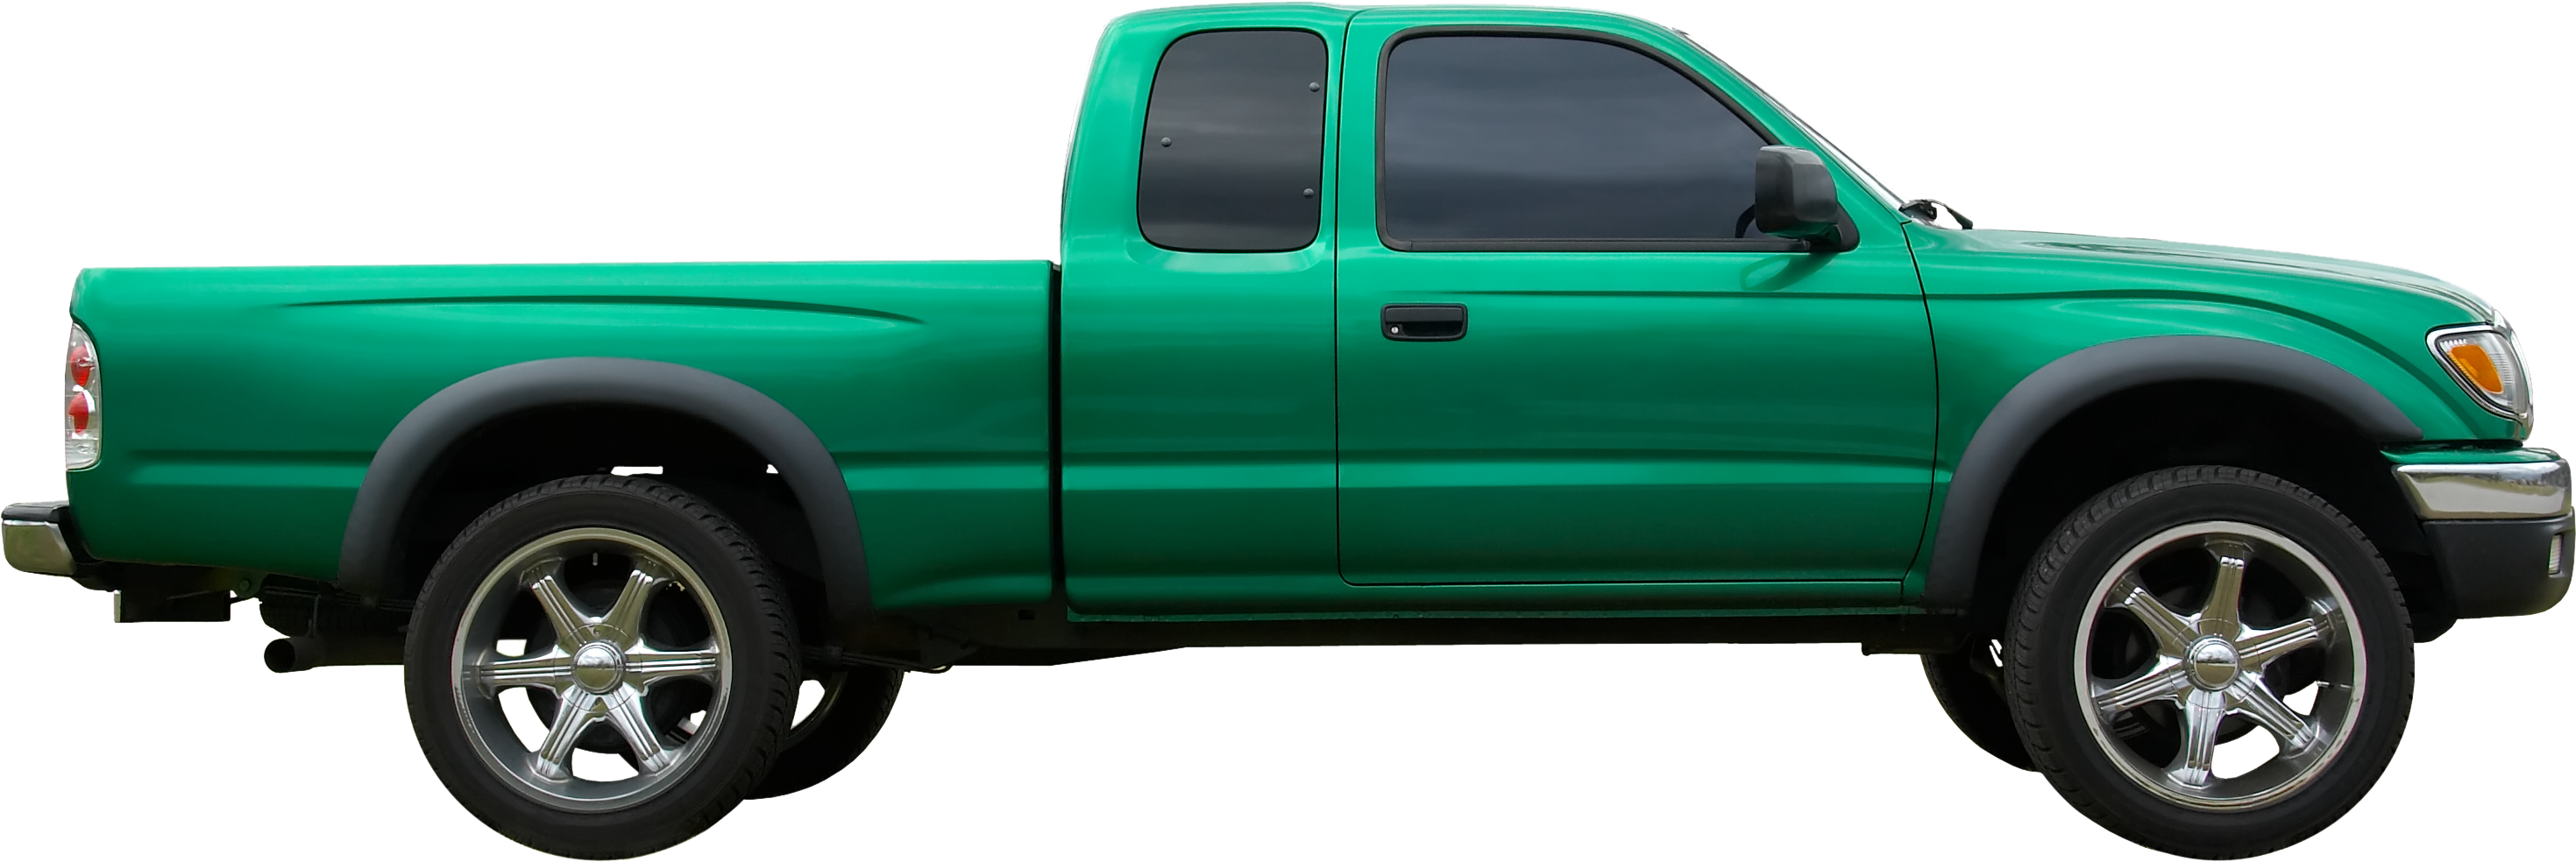 Download this high resolution Pickup Truck In PNG